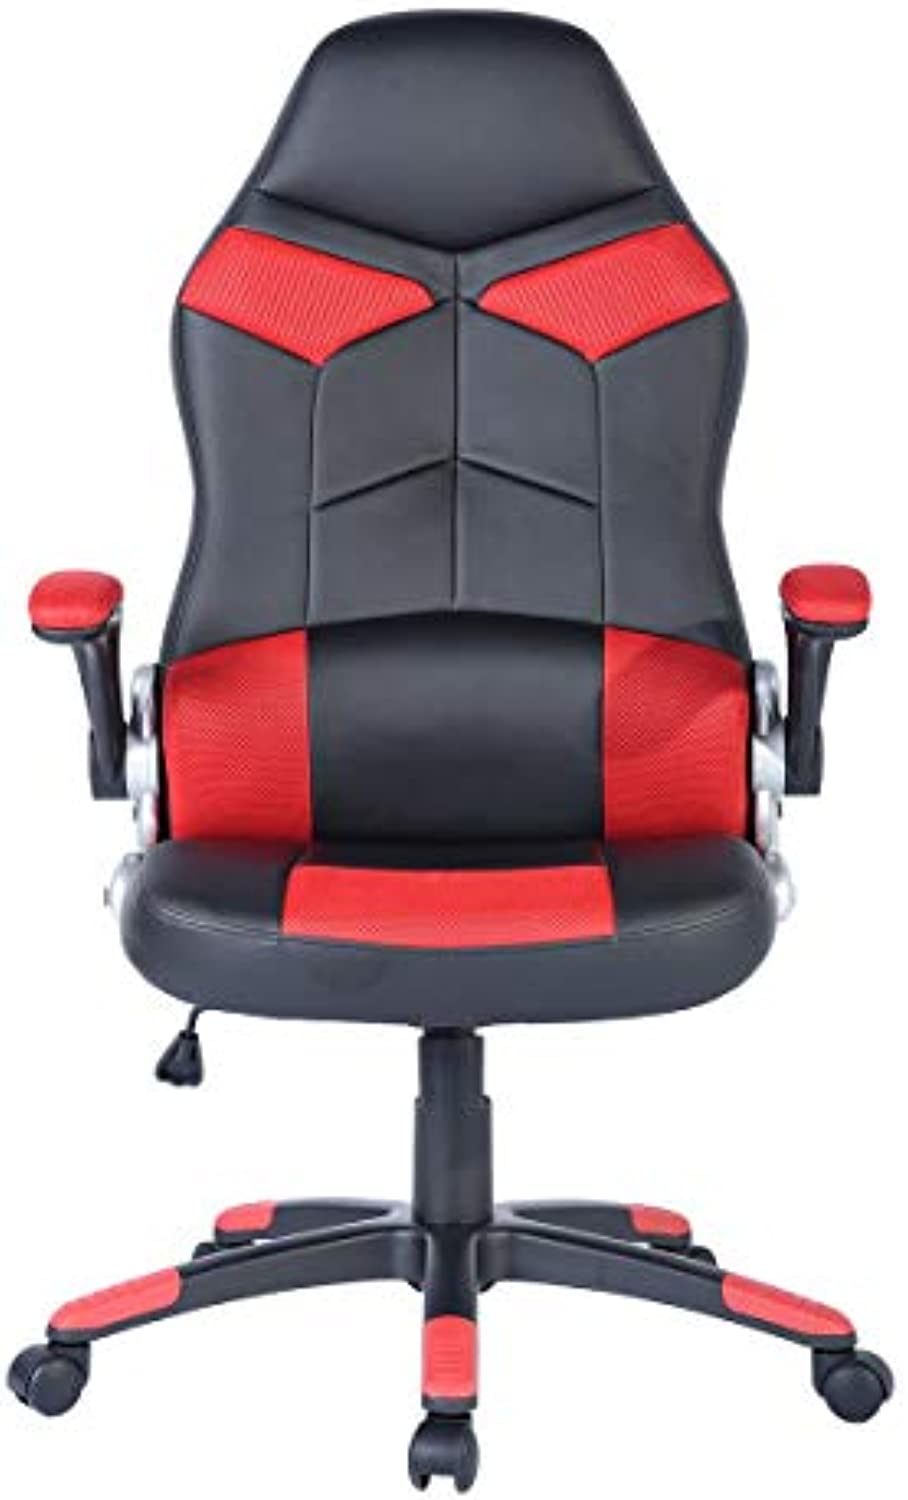 Ergonomic High-Back Home Office Chair, Footrest Support (Red)